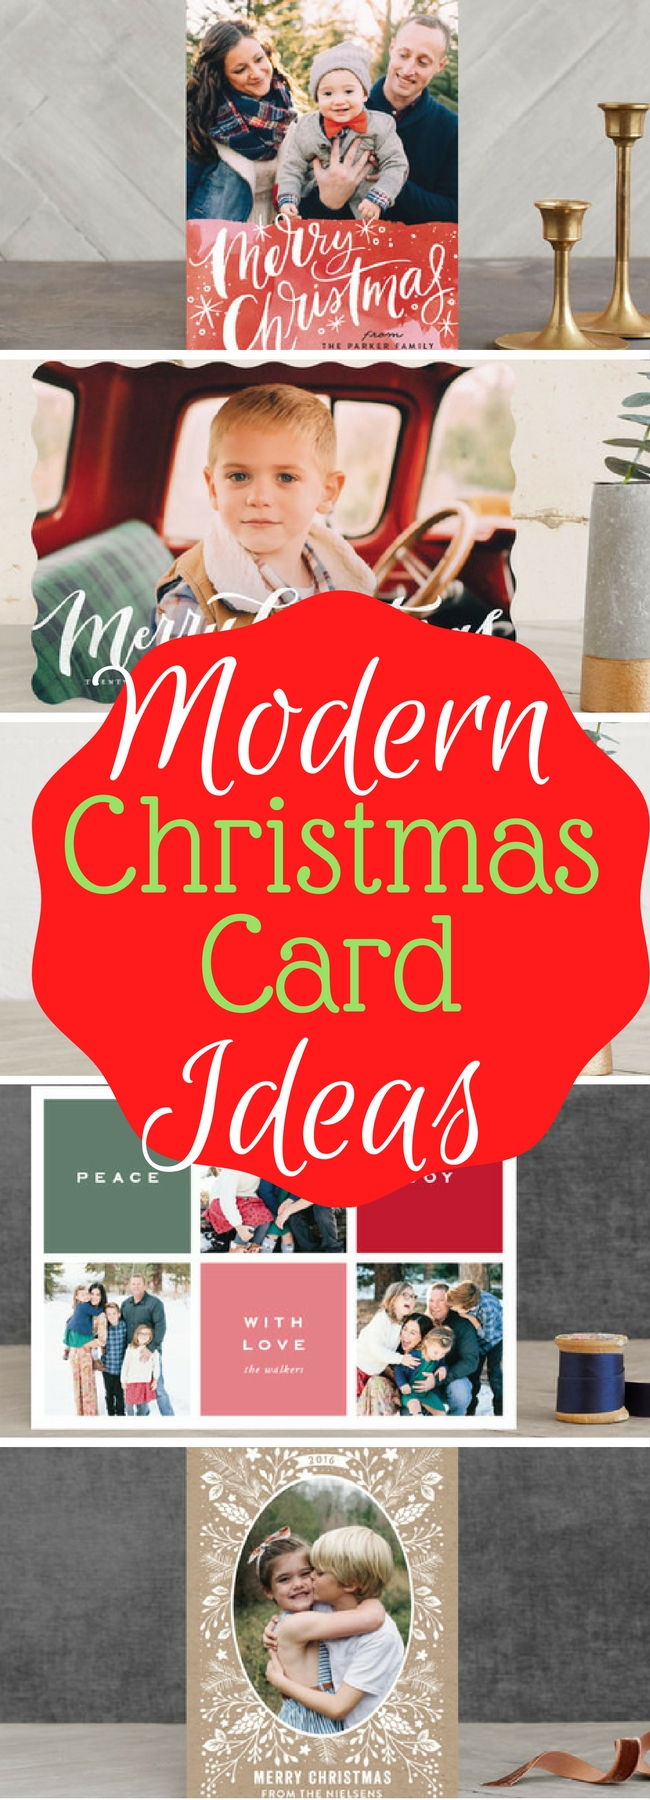 Here is a fun collection of Modern Christmas Card ideas for this year!